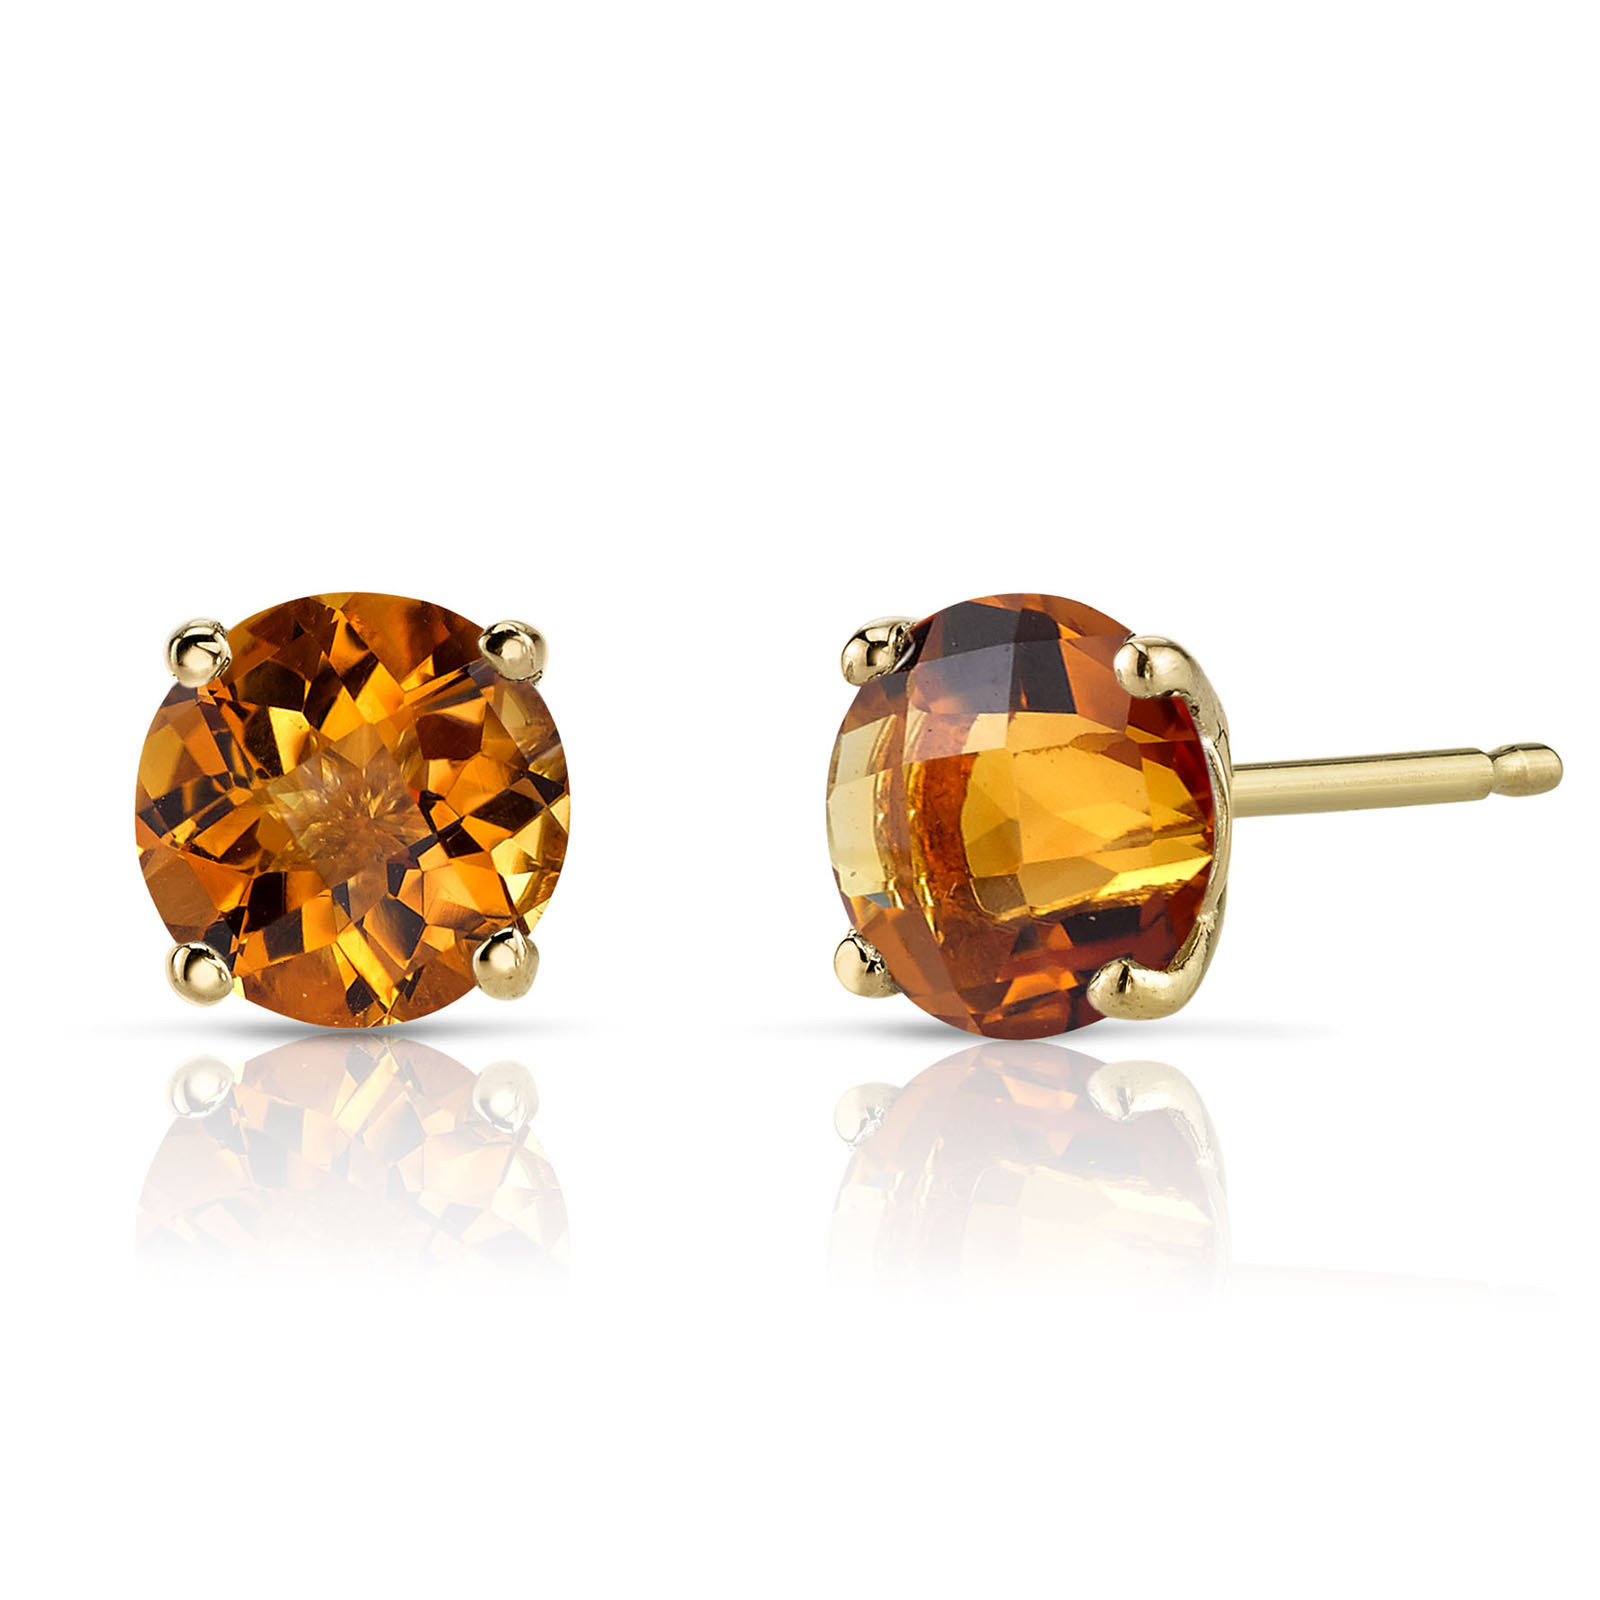 9fa2829f07407 Citrine Stud Earrings in 9ct Gold